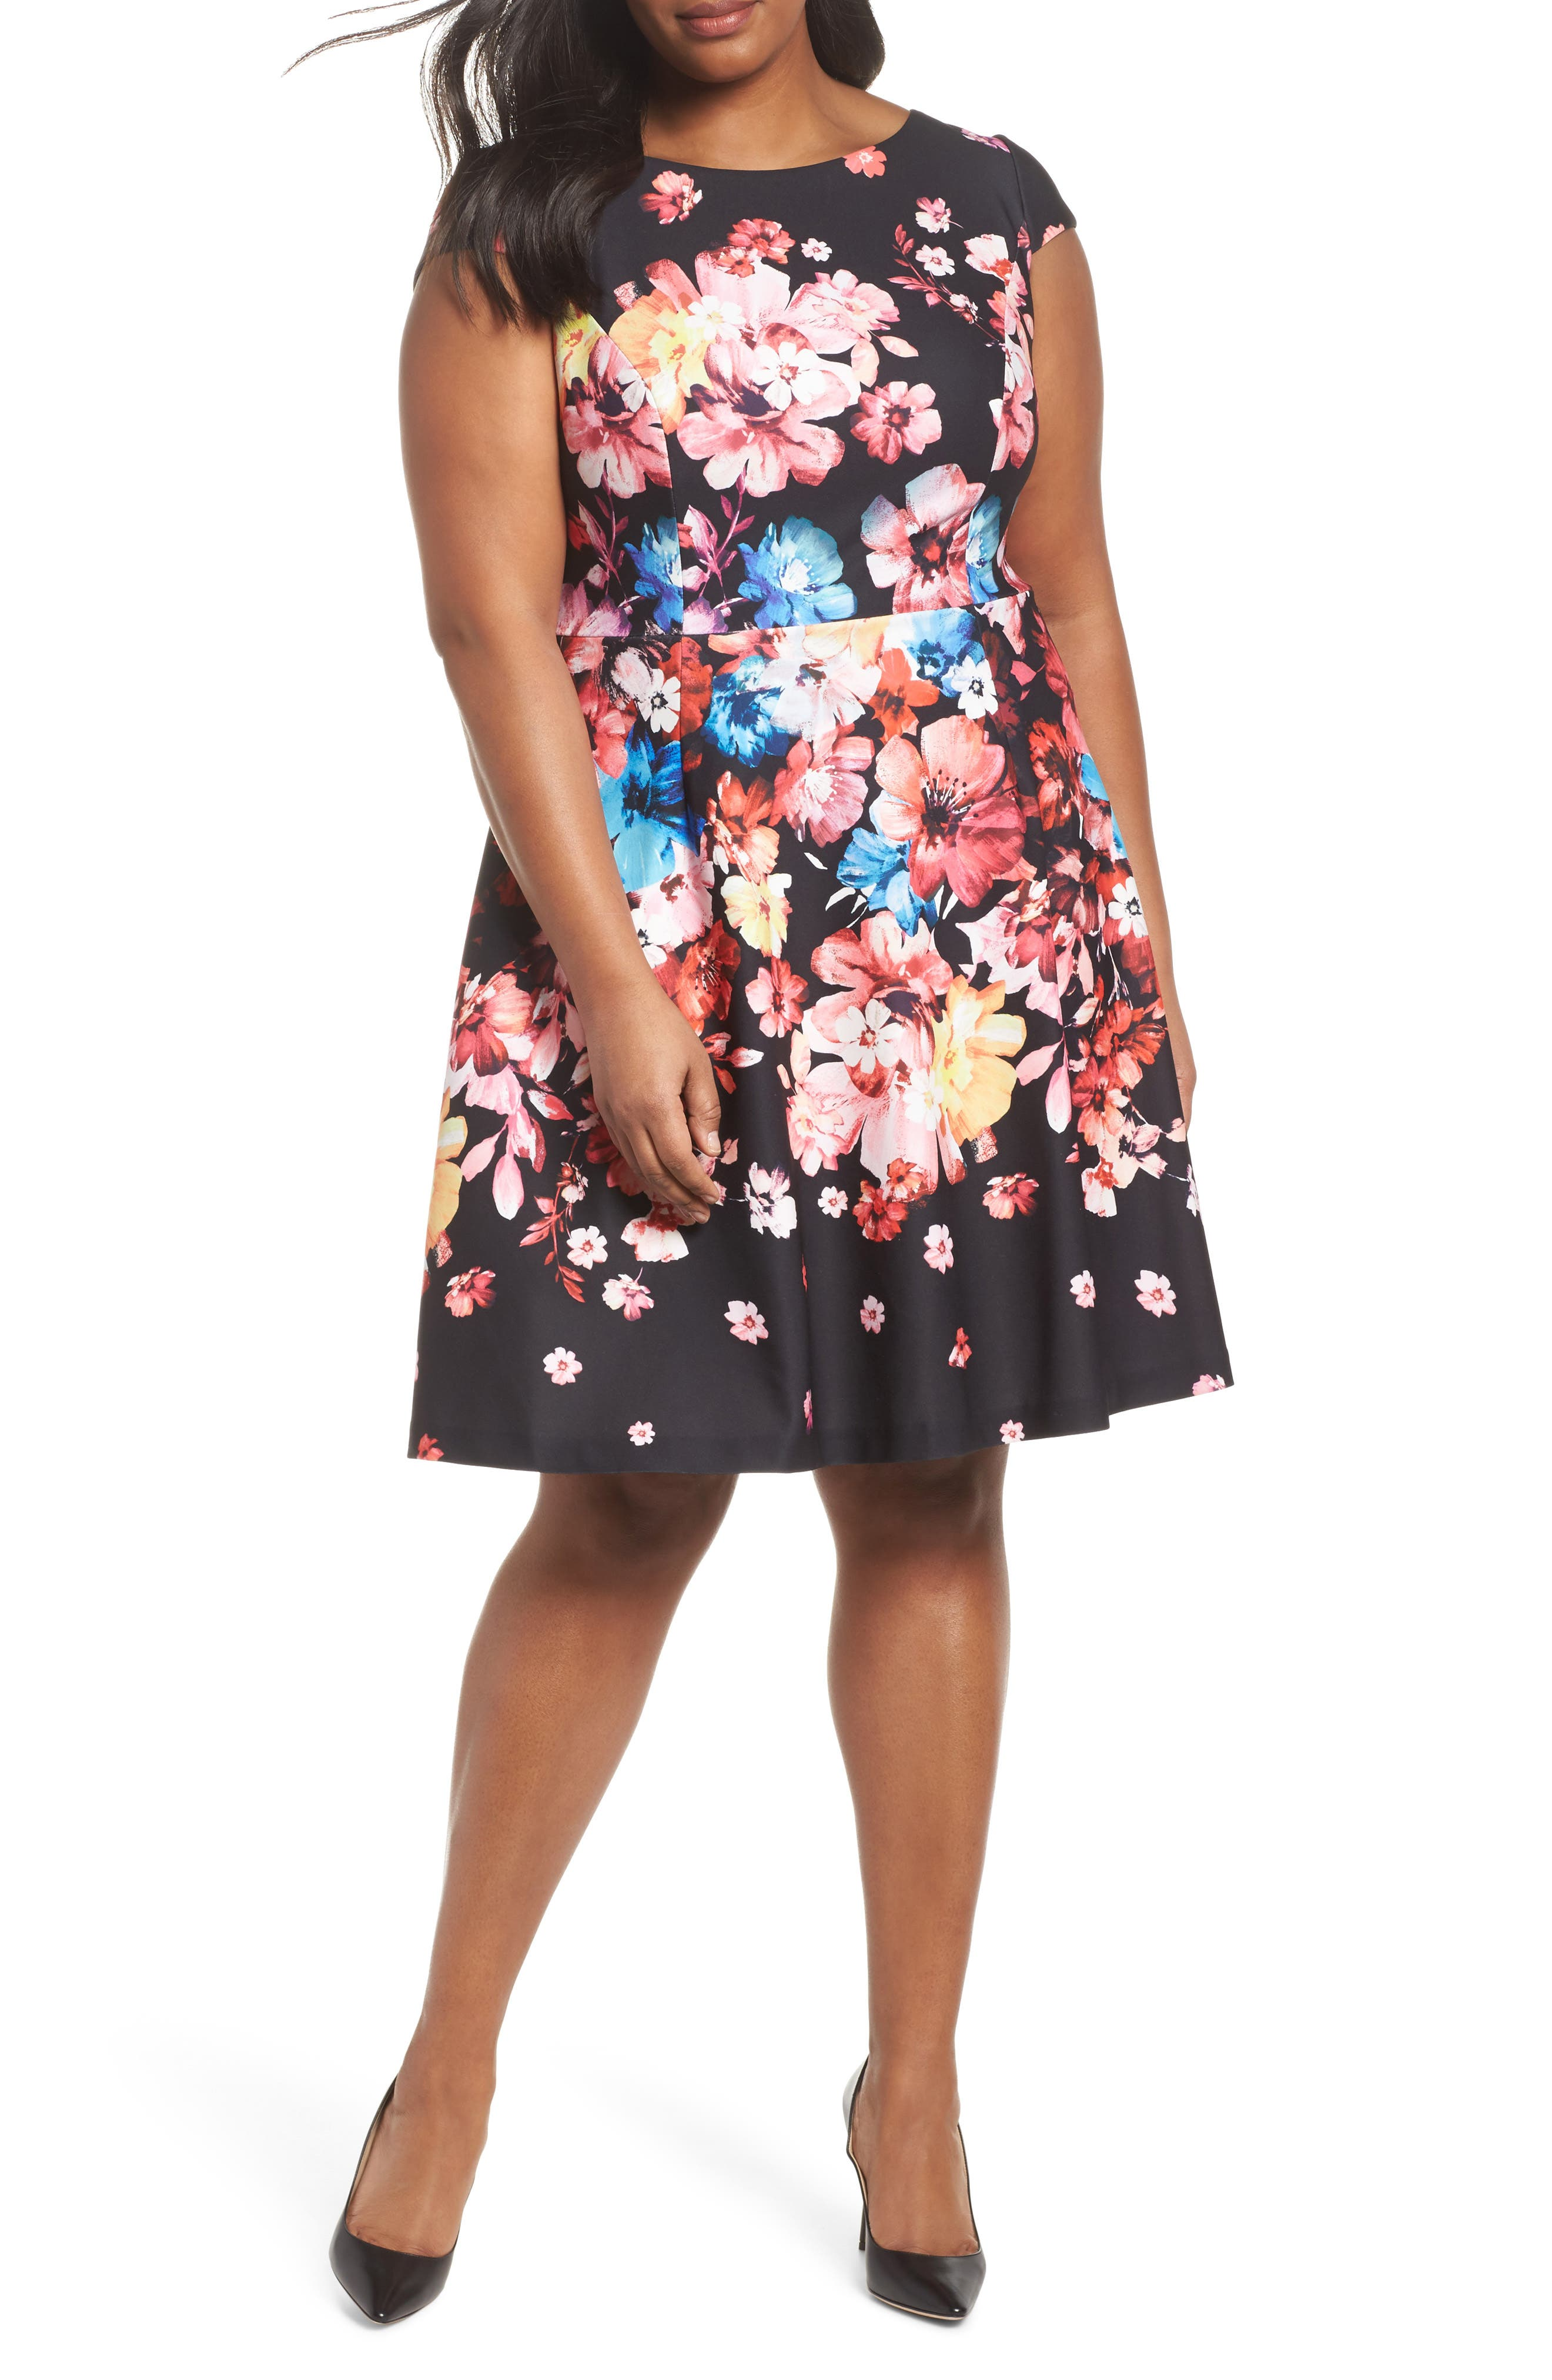 Adrianna Papell Spring In Bloom Fit & Flare Dress (Plus Size)